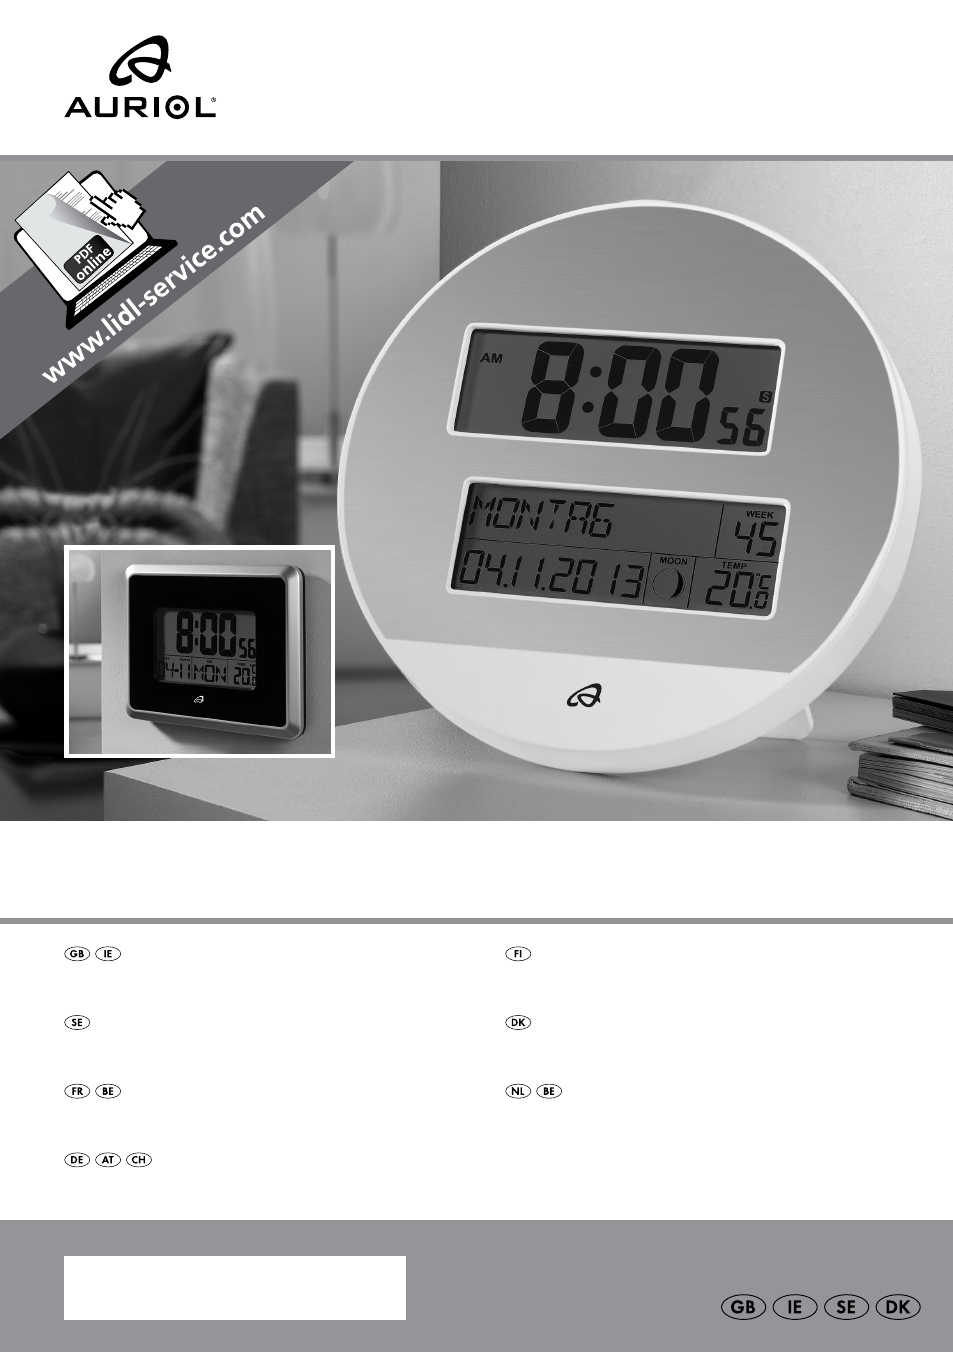 auriol z30237b c user manual 48 pages rh manualsdir com auriol lcd radio controlled clock manual auriol radio controlled clock instructions